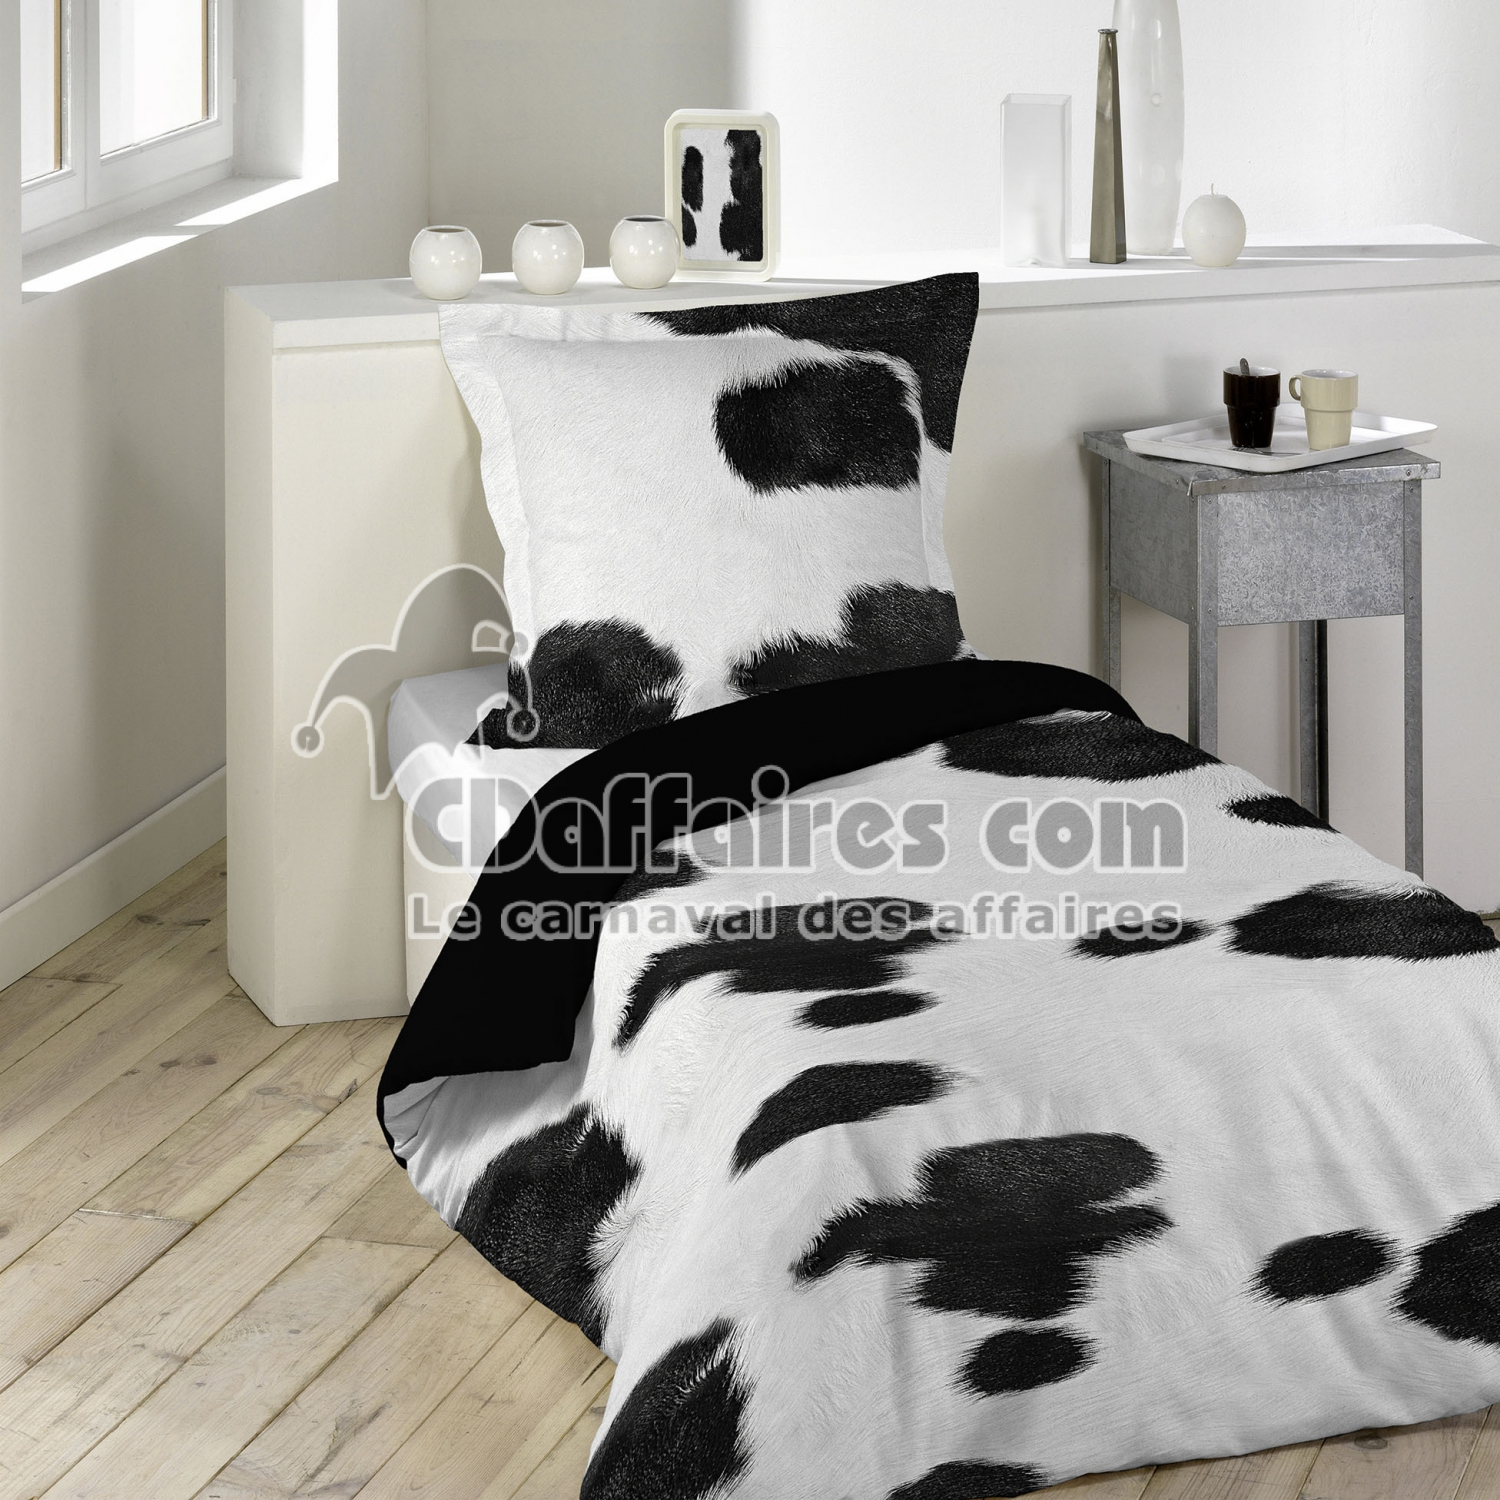 housses de couette 140x200 cm cdaffaires. Black Bedroom Furniture Sets. Home Design Ideas